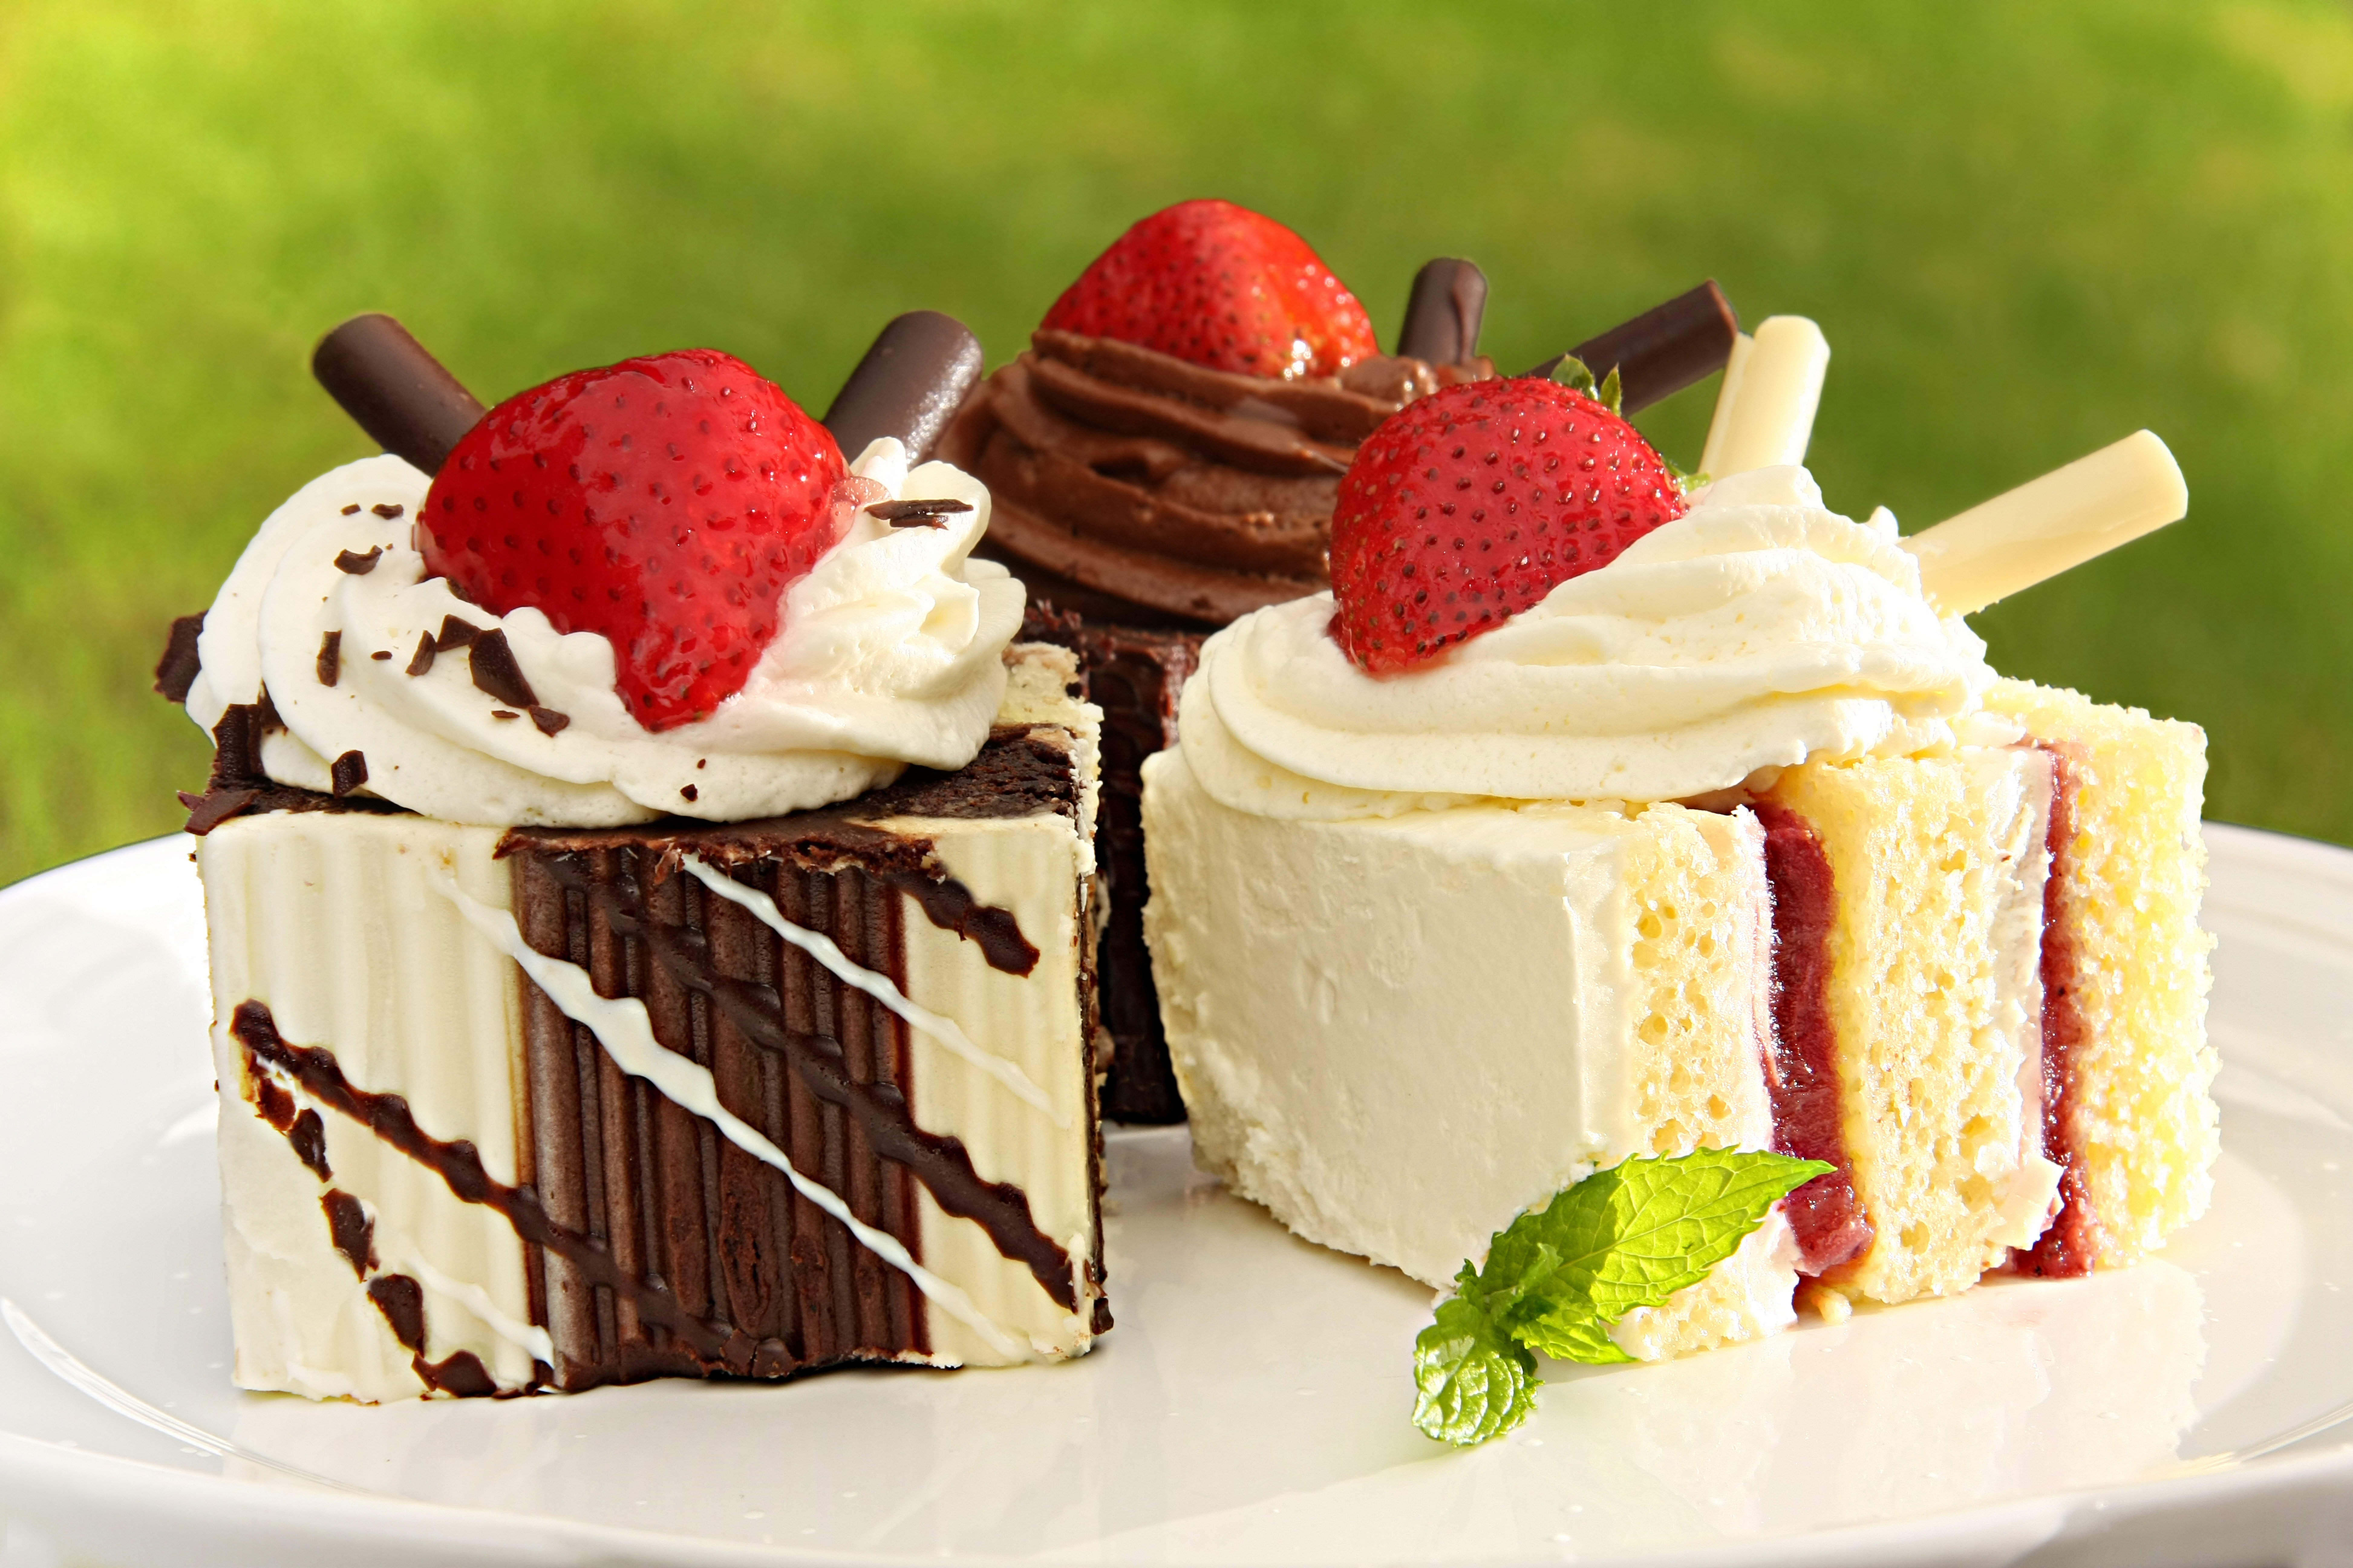 614 cake hd wallpapers background images wallpaper abyss